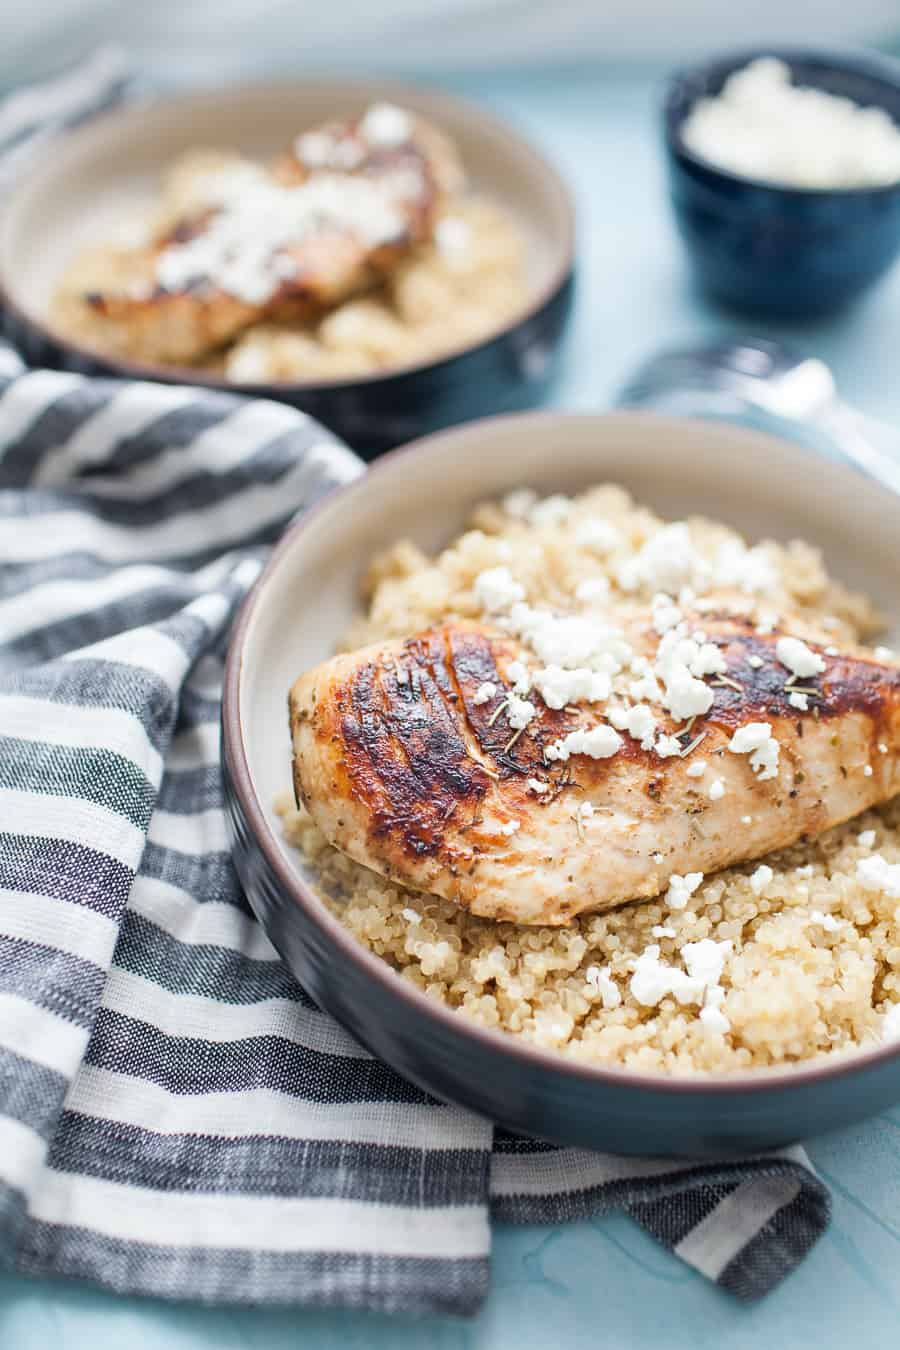 Pan Seared Peach Balsamic Chicken is a healthy, simple weeknight dinner that the whole family will enjoy. Mix up a quick marinade with olive oil, peach balsamic vinegar and spices, let it sit for a little while in the fridge, then pan sear and cover to let it cook through.